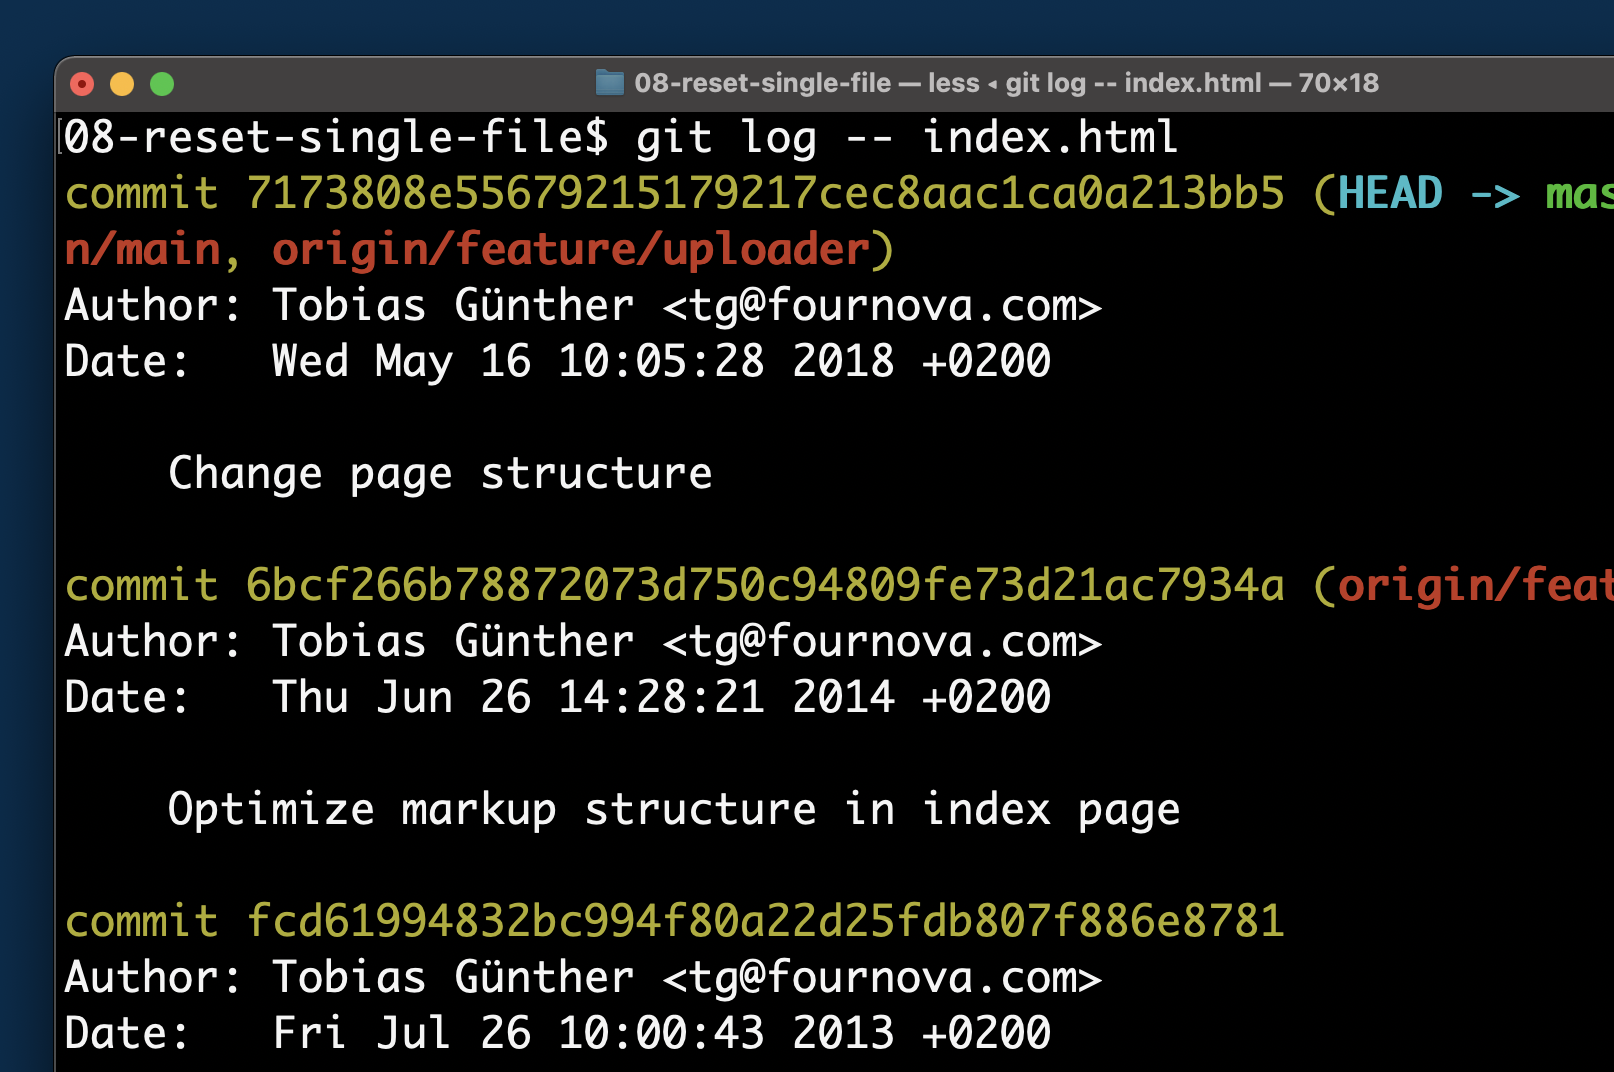 Inspecting the commit history of a specific file